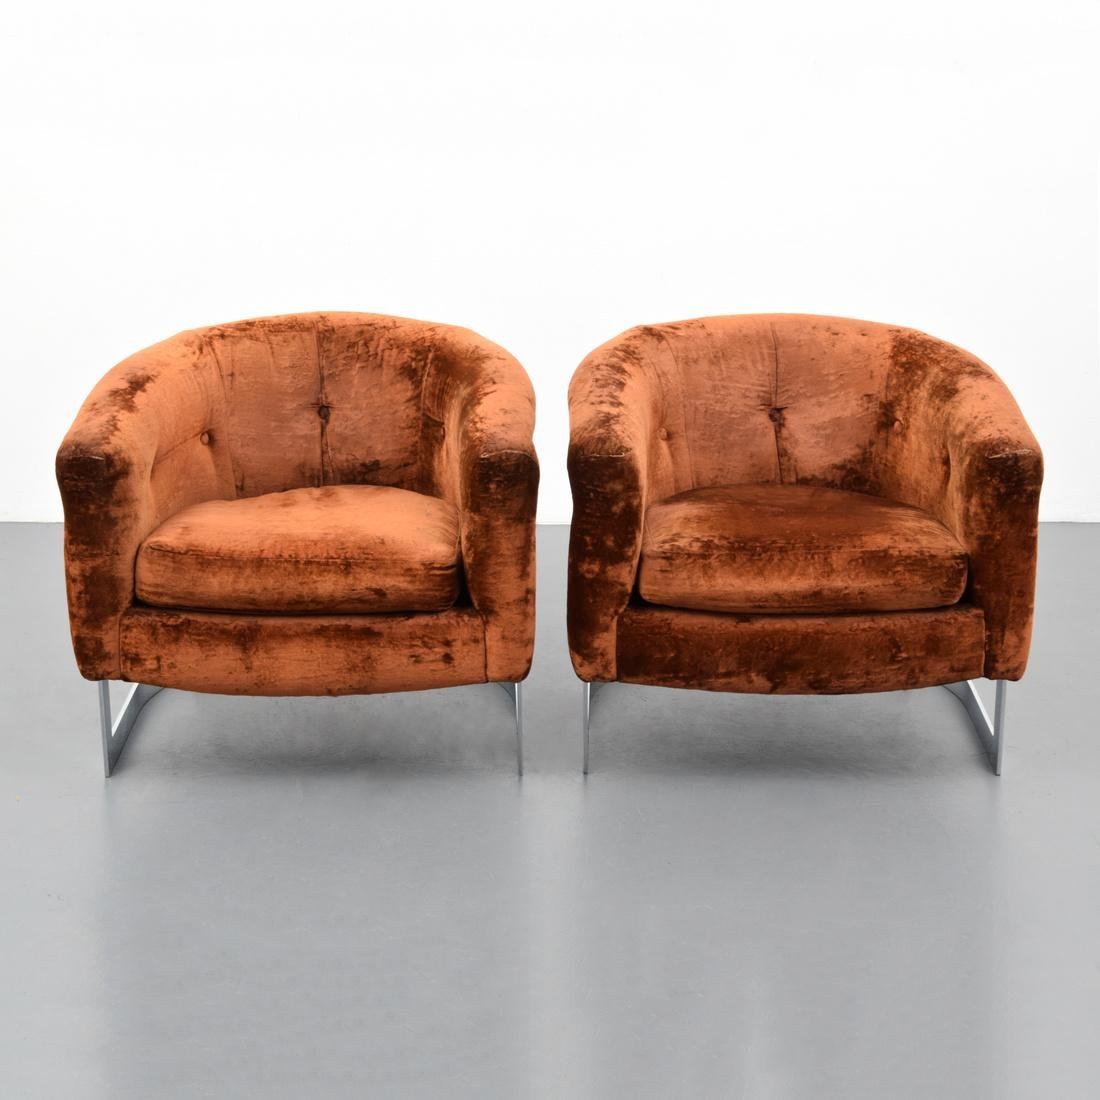 Pair of Lounge Chairs Attributed to Milo Baughman - 7